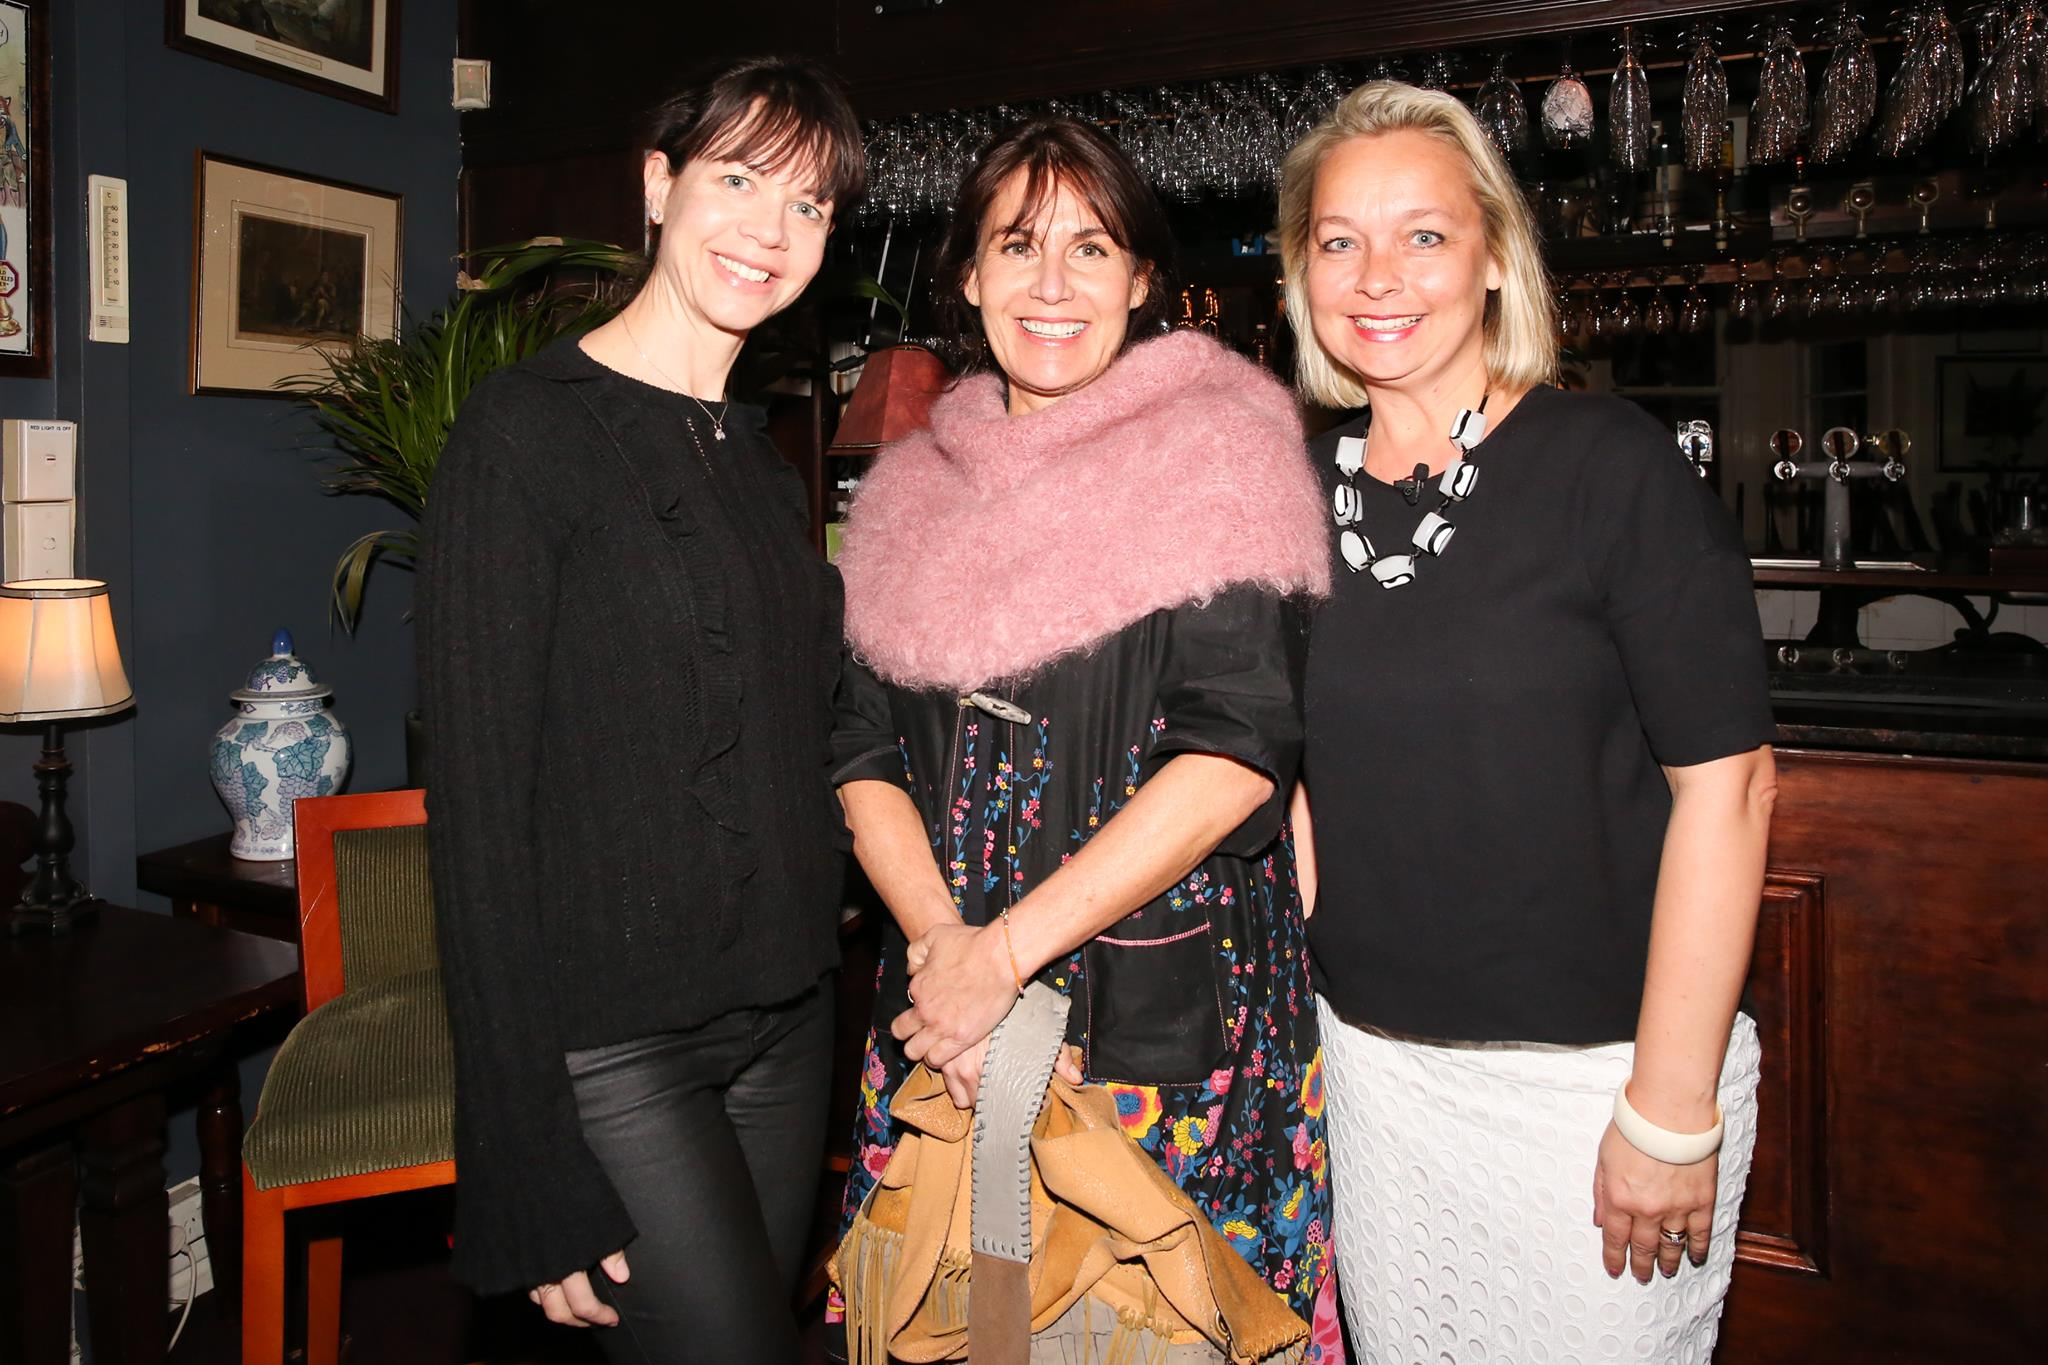 Fabulous creative mamas with featured evening presenter, Emma Veiga-Malta, artist & founder Bespoke Backdrops, who shared her epic story, 'A Creative Journey - From Fabulous to Fear & Back Again'.